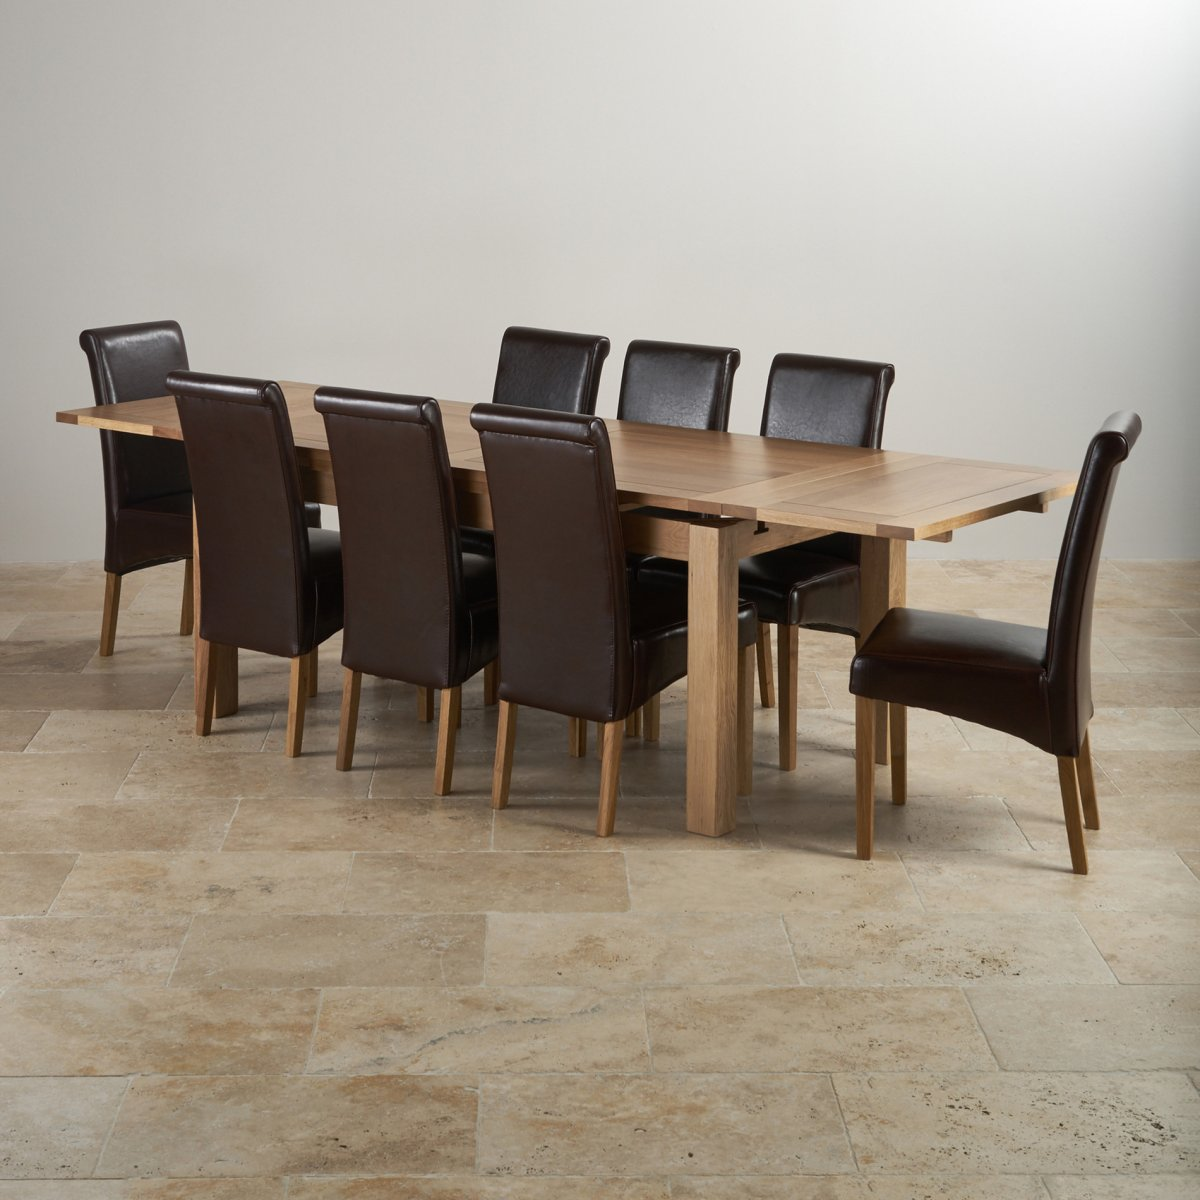 Dorset oak dining set ft table with chairs